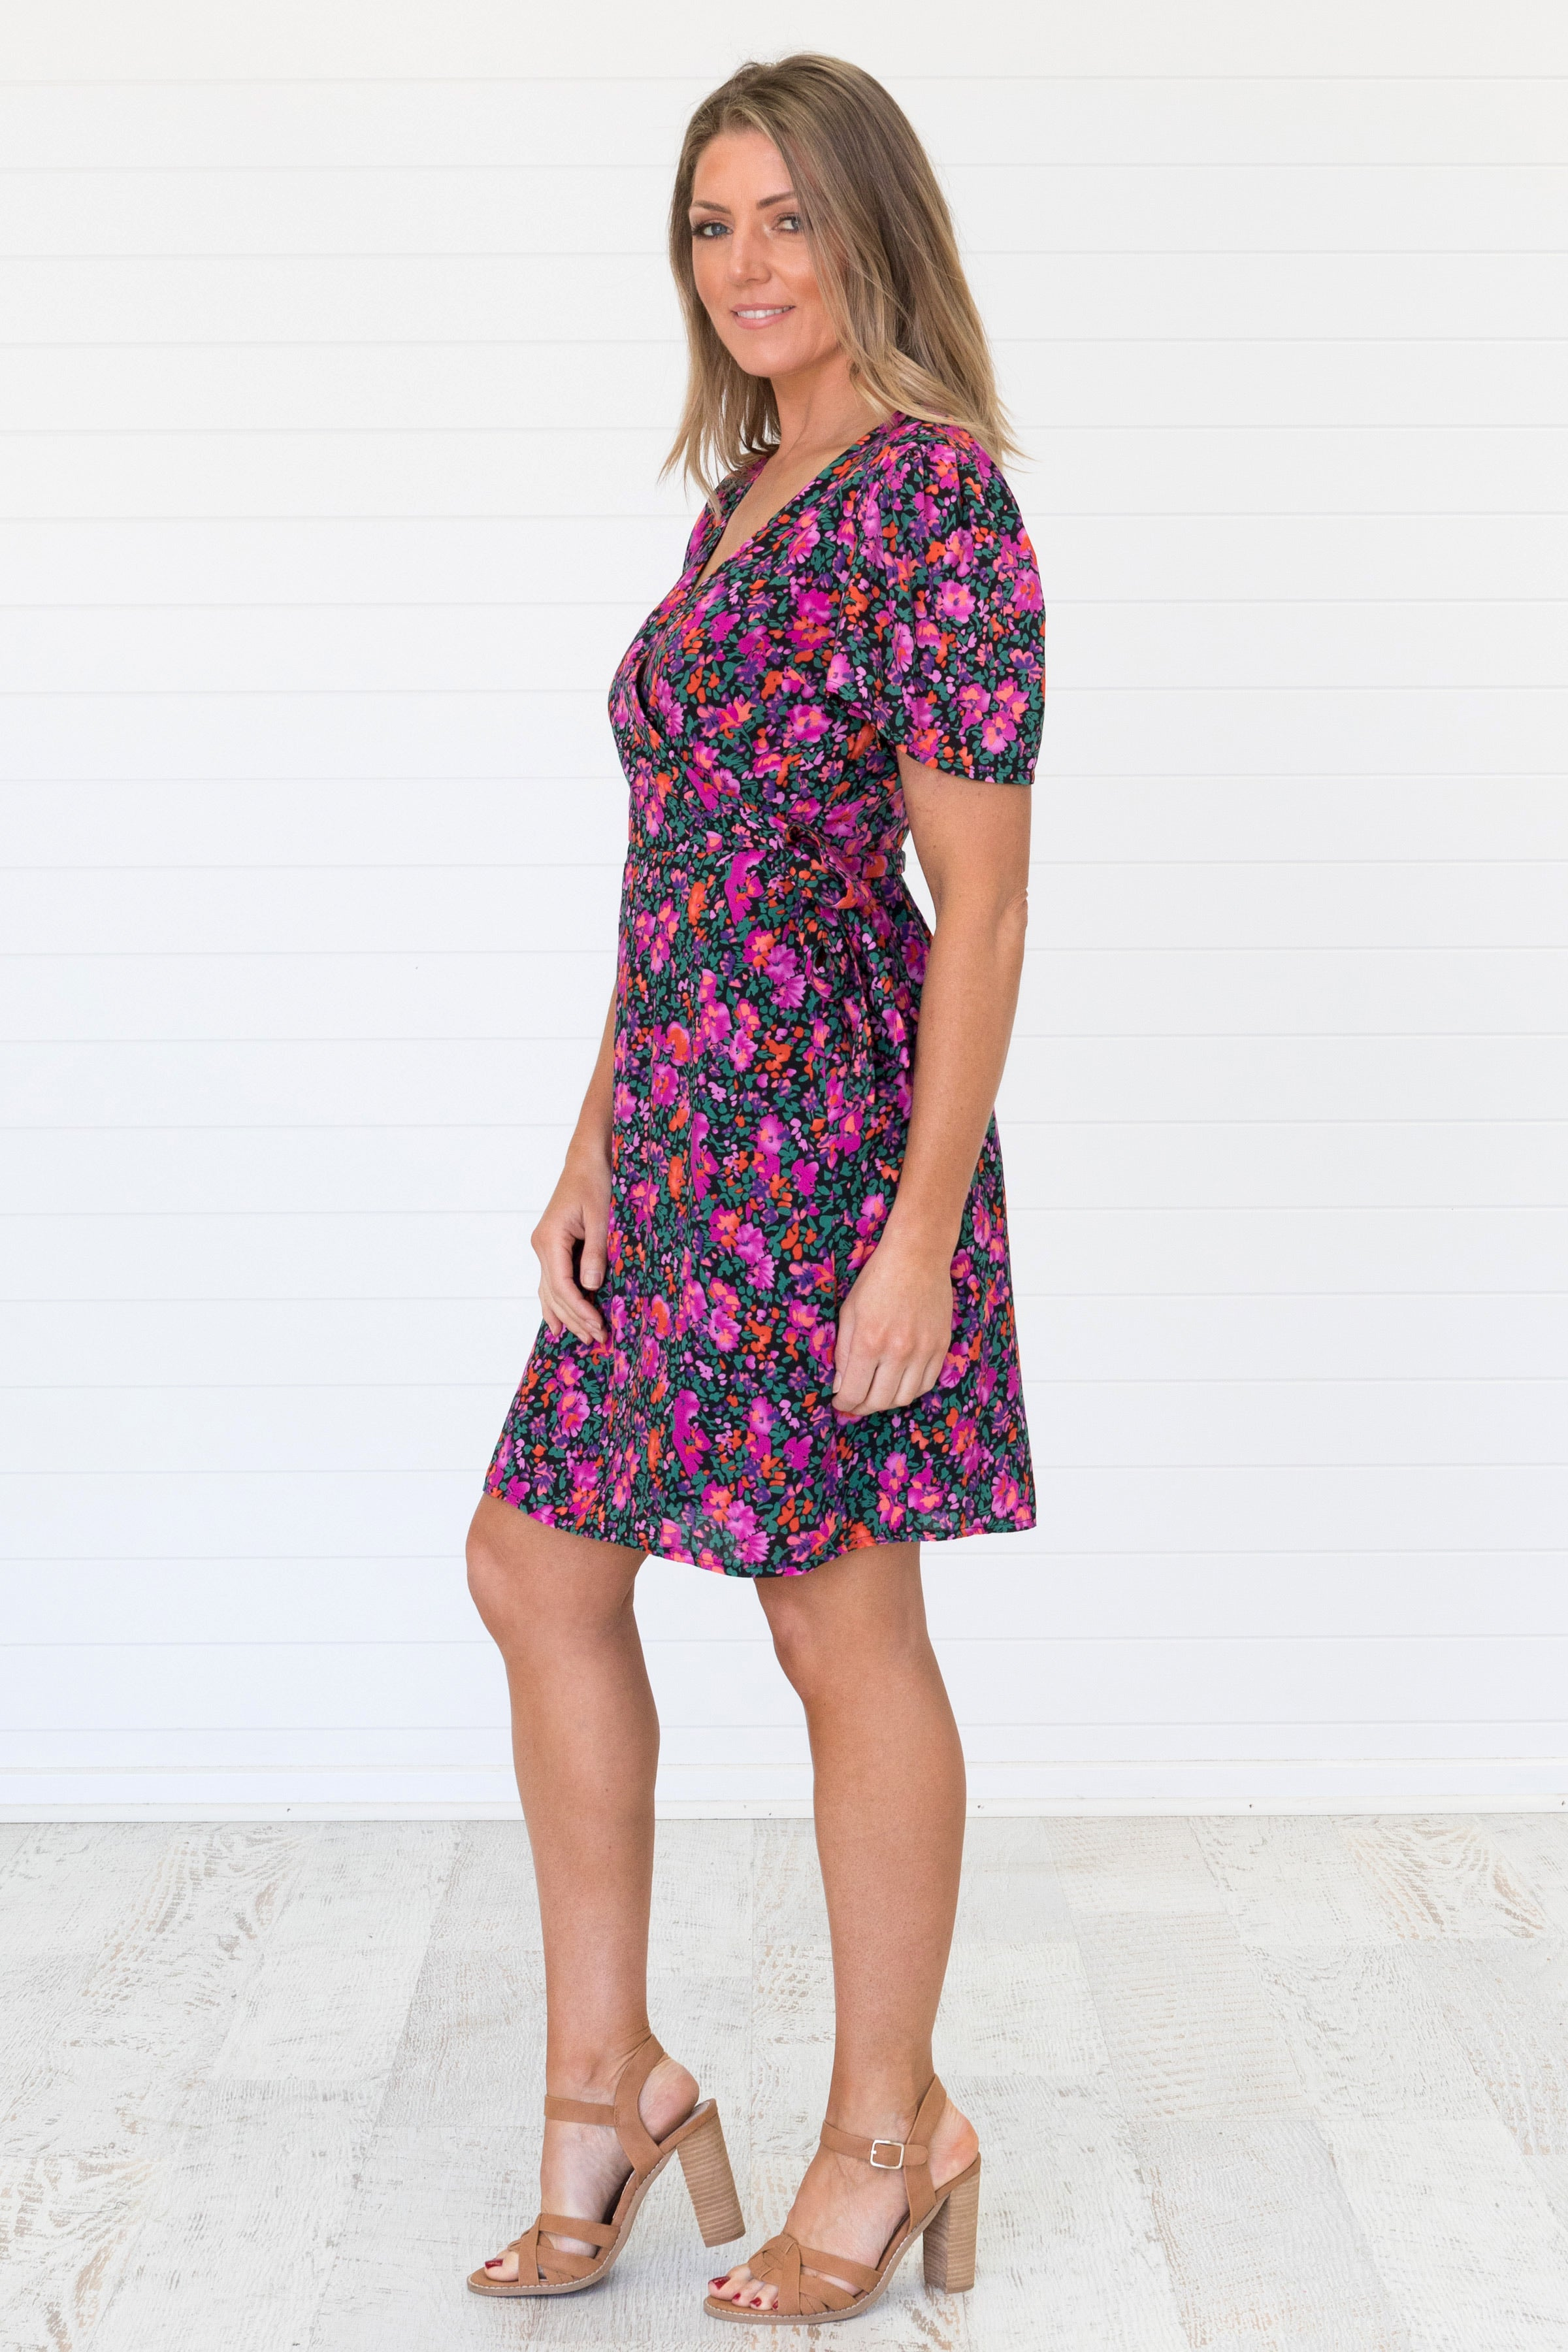 Indianna Dress Pink - Was $59.95